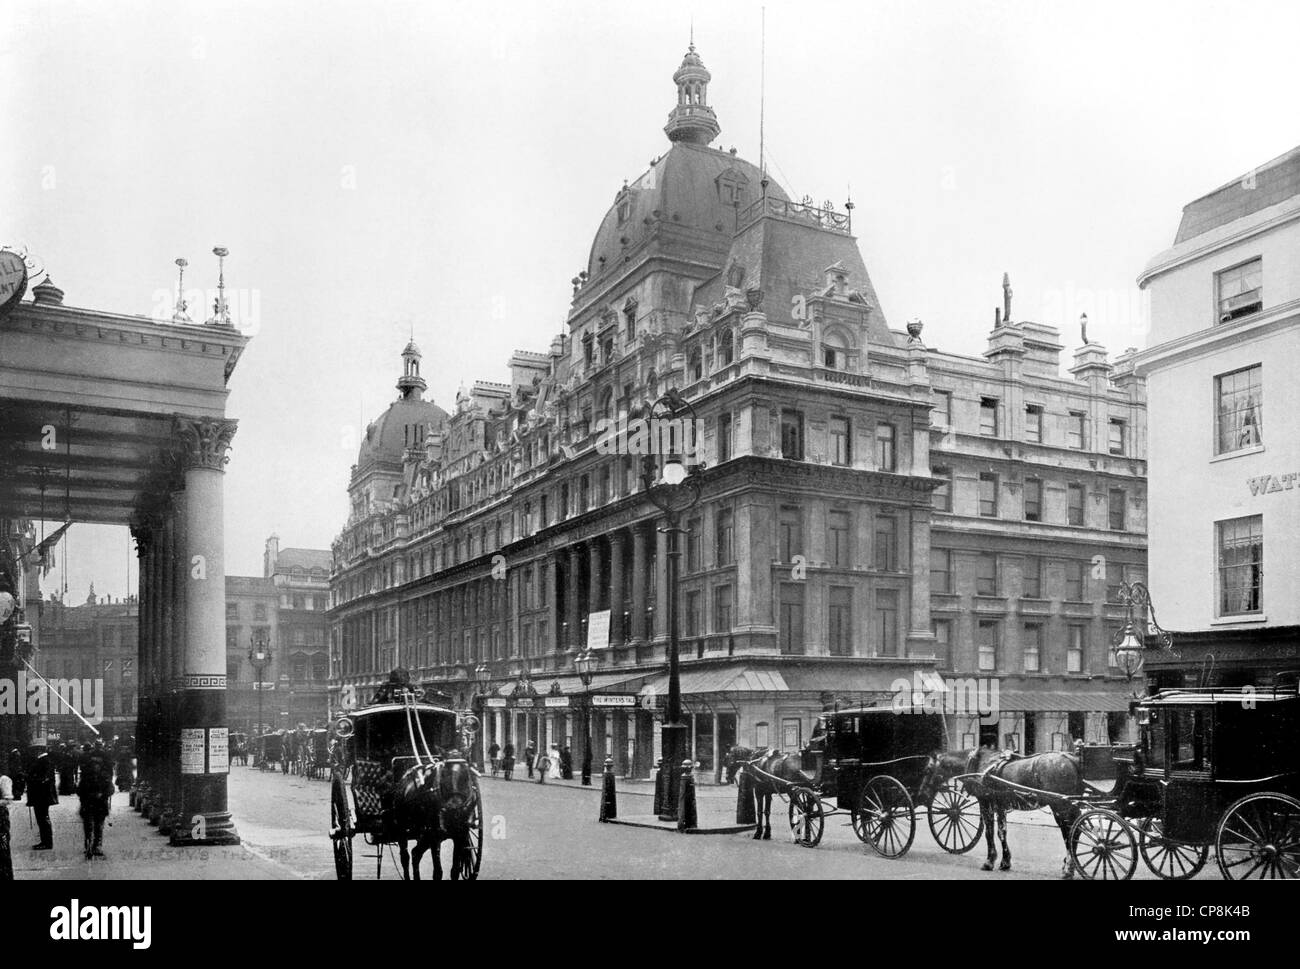 Historical photograph from the 19th century, Her Majesty' Theatre, Westminster, London, England - Stock Image